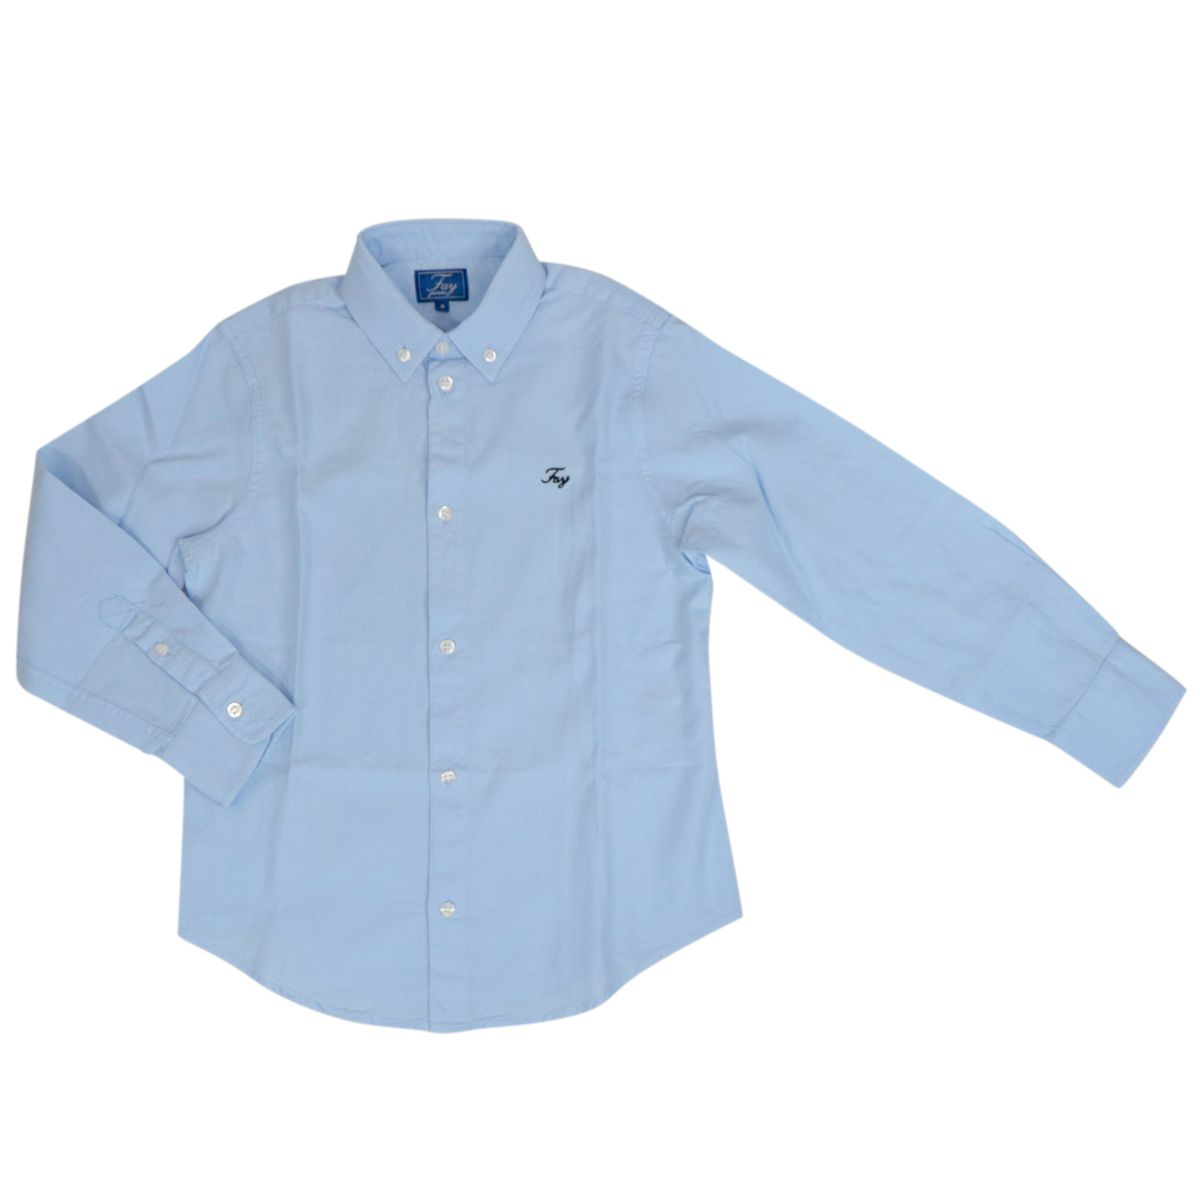 Button-down cotton shirt with embroidered logo Heavenly Fay